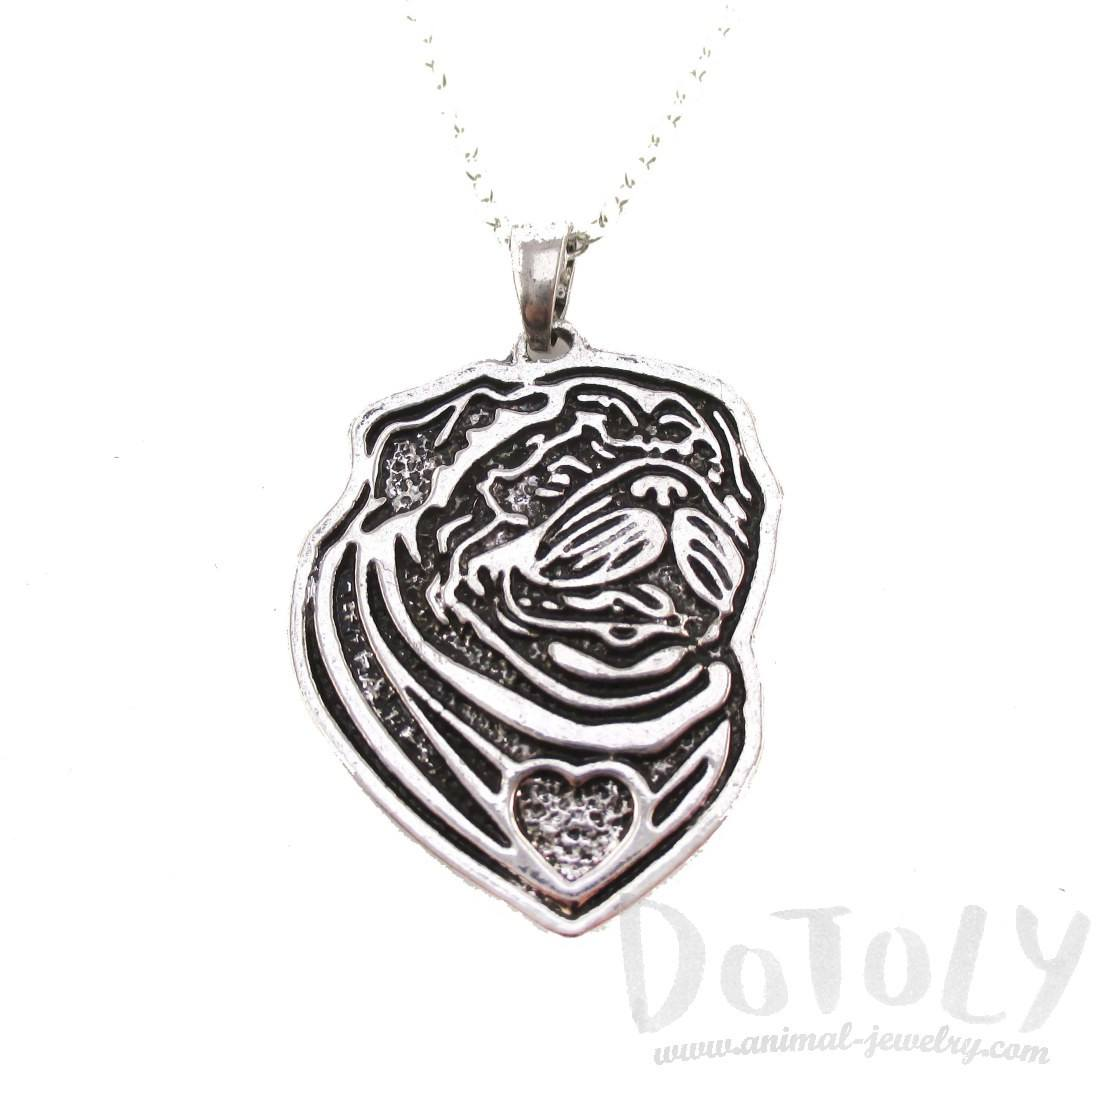 Pug Puppy Dog Portrait Pendant Necklace in Silver